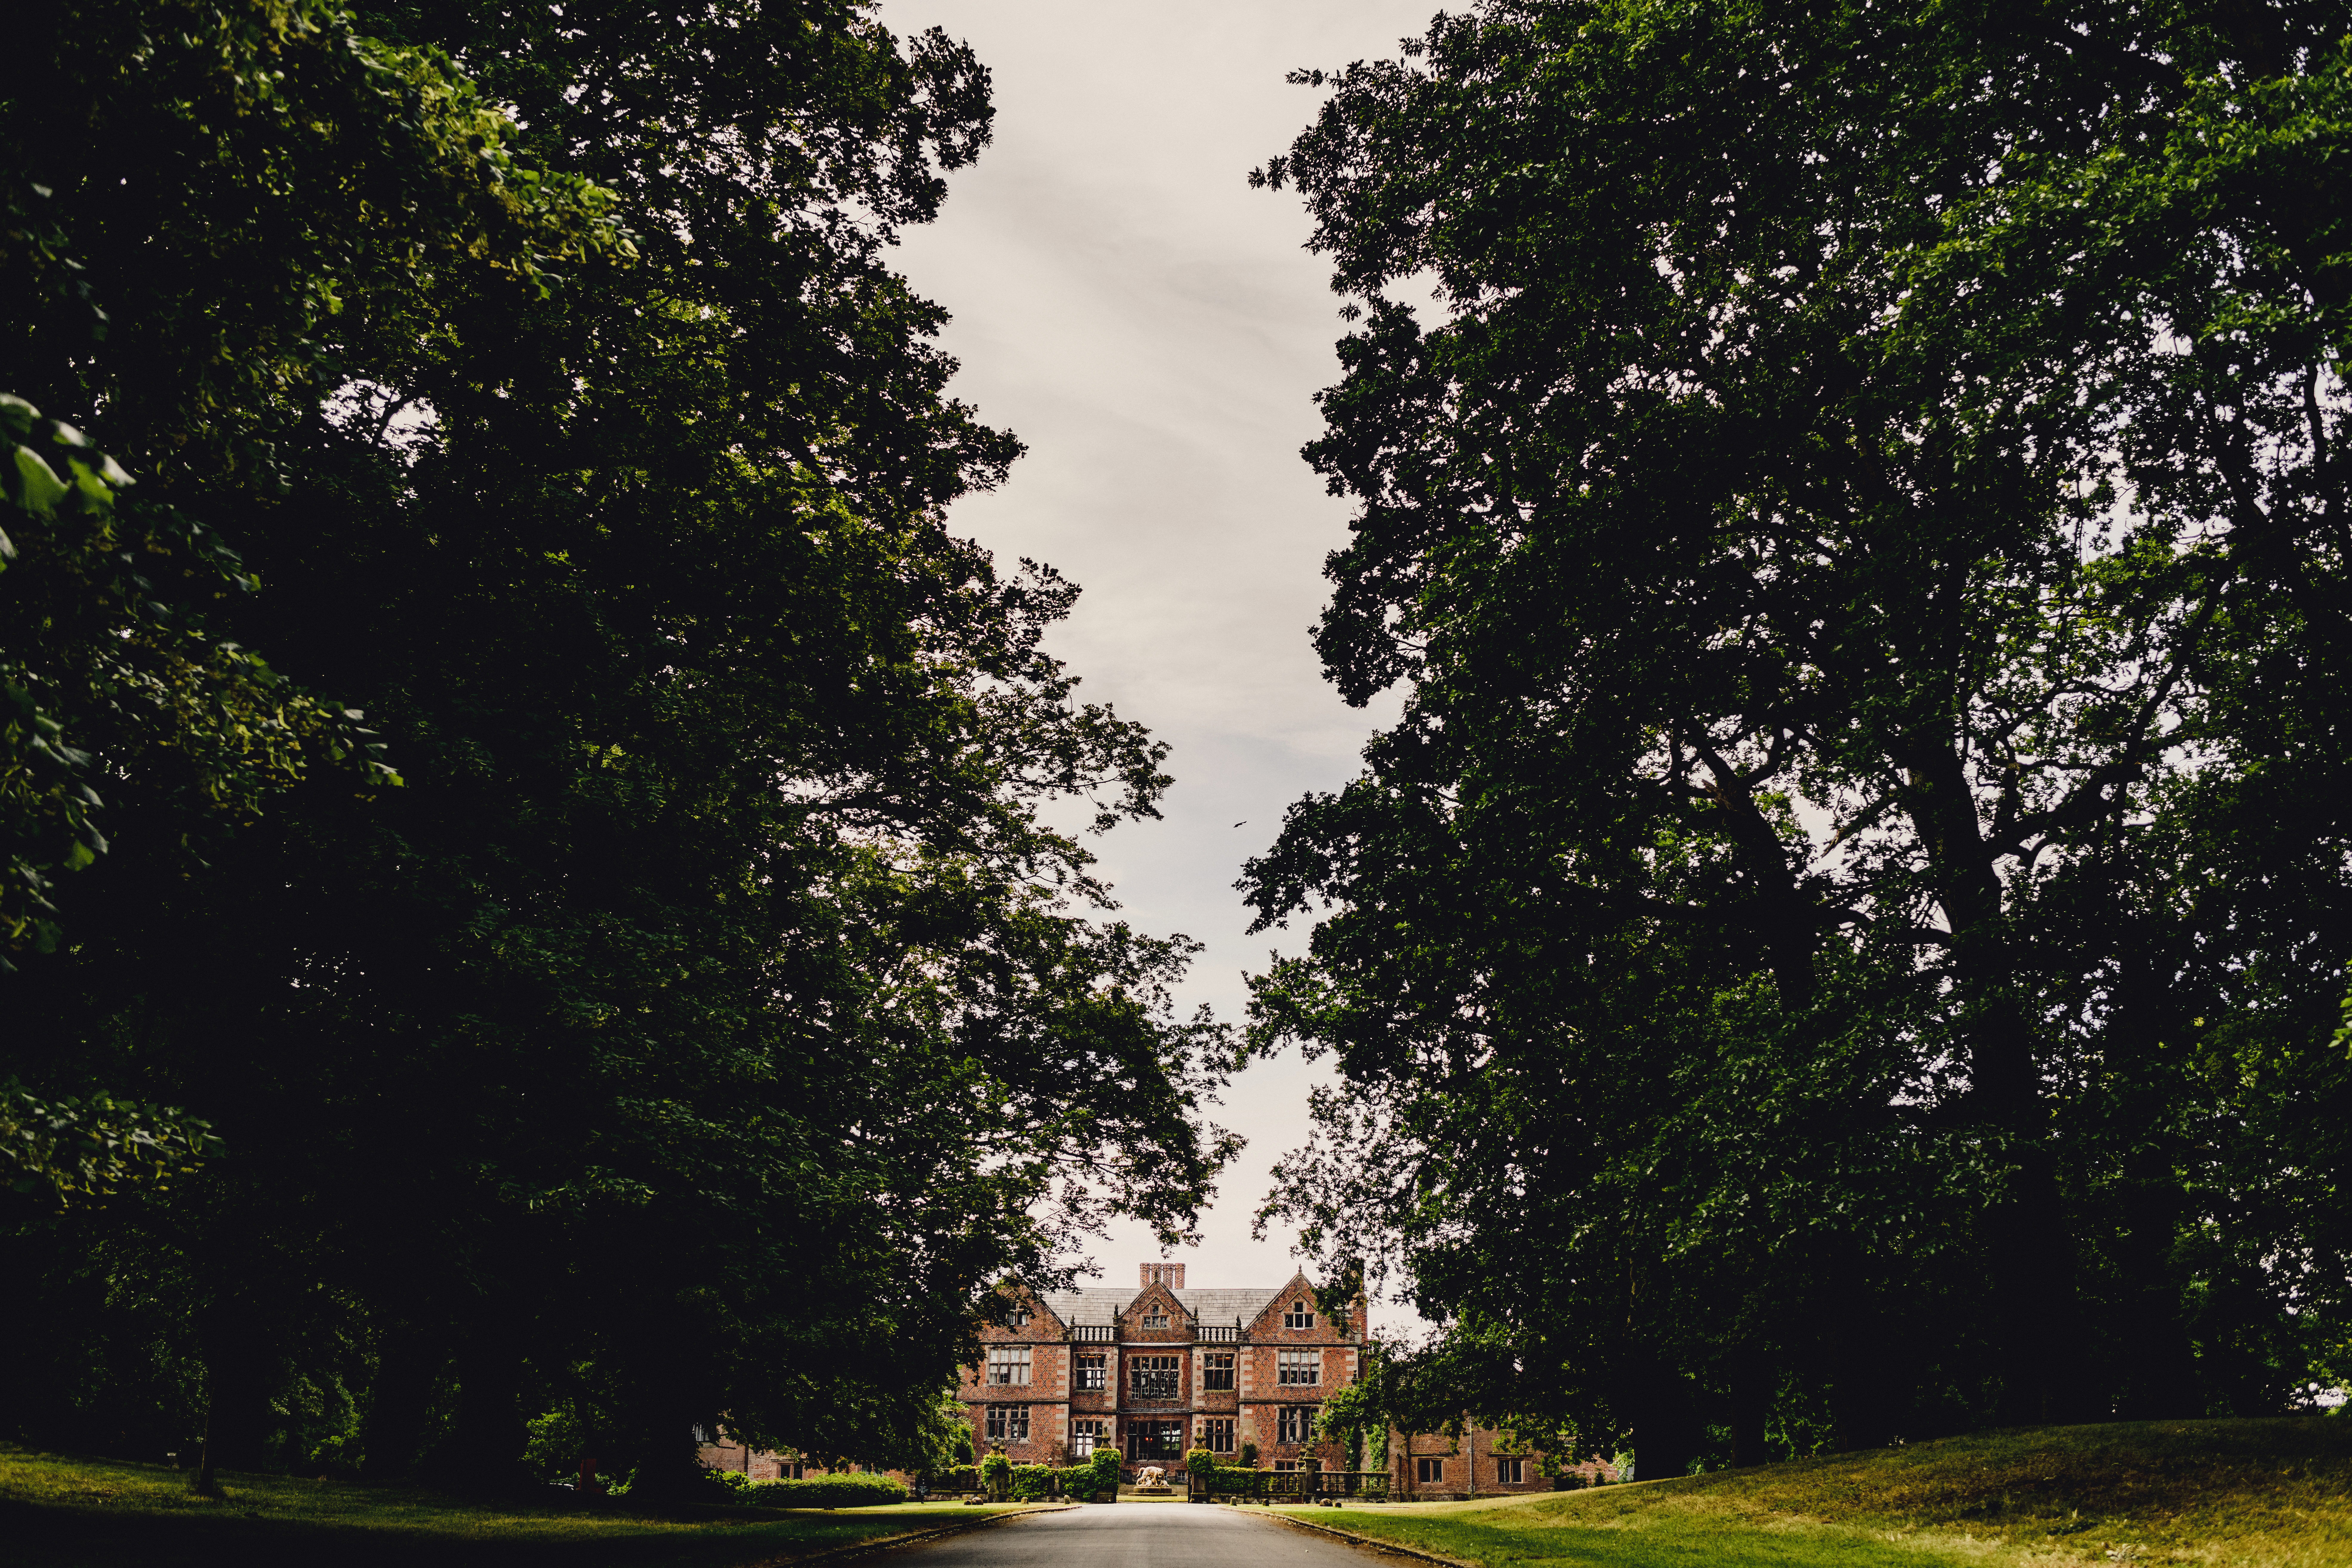 Entrance to Dorfold Hall, Cheshire, England - photo by Ash Davenport of Mike Studios in London